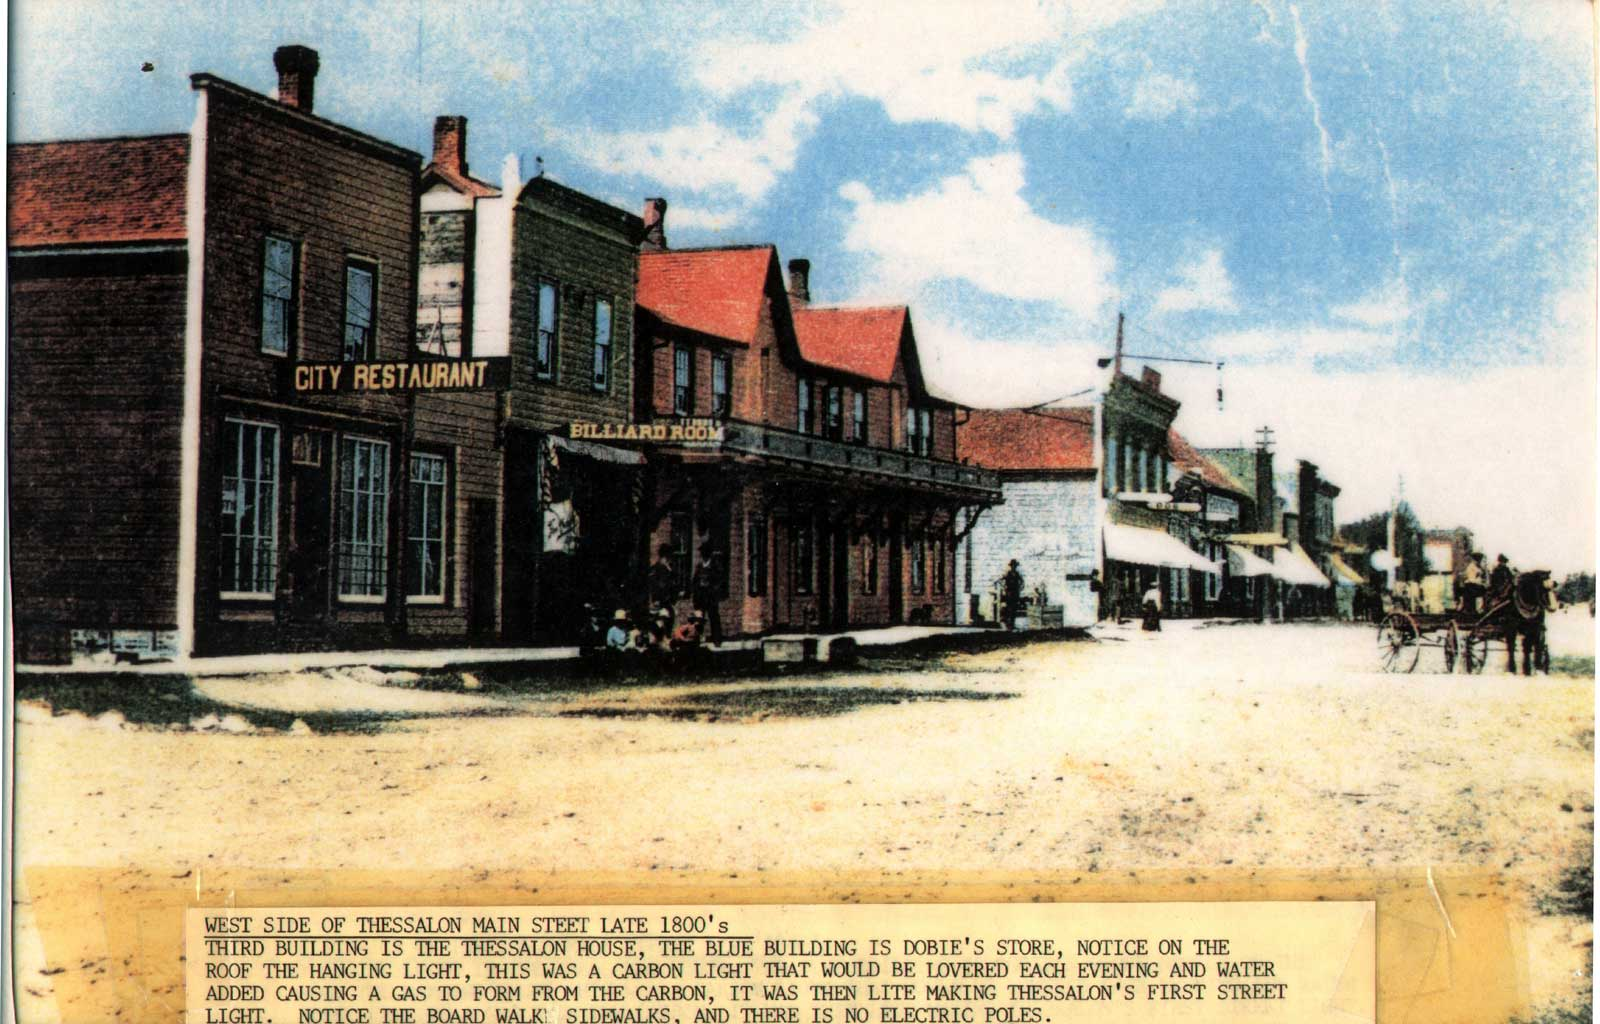 West Side of the Thessalon Main Street, circa 1890: A Historical